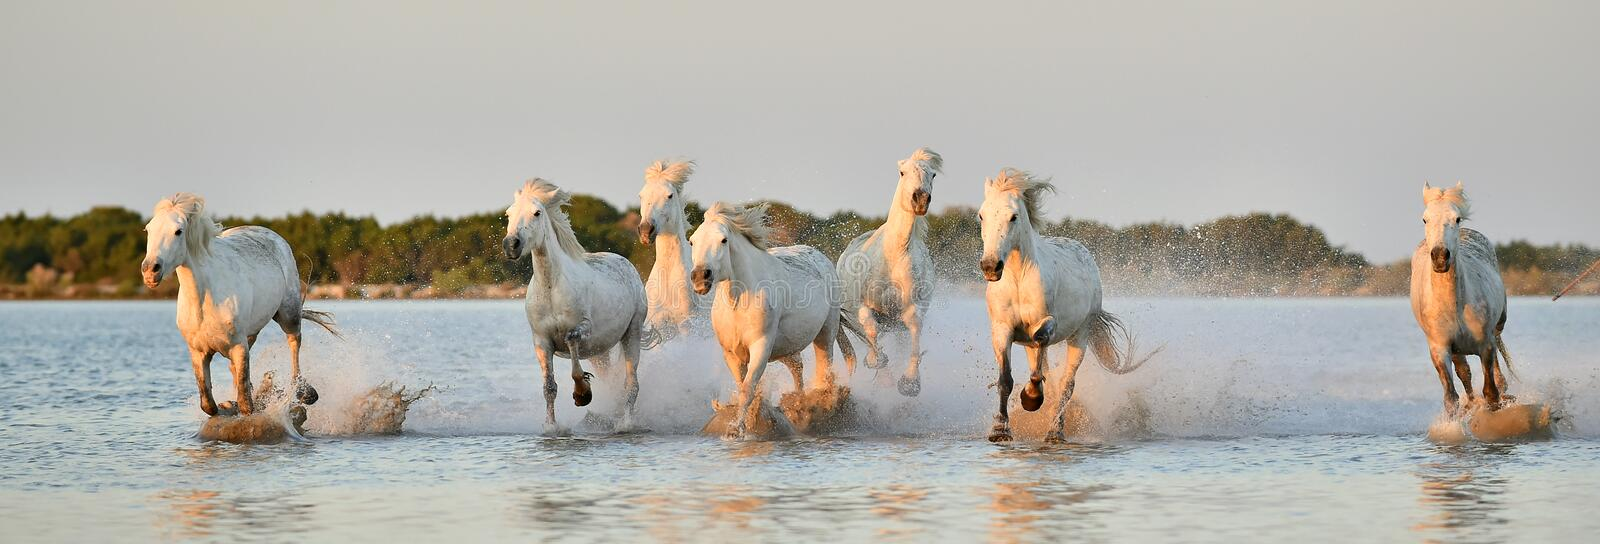 Download Herd Of White Camargue Horses Running Through Water Stock Photo - Image: 54678465